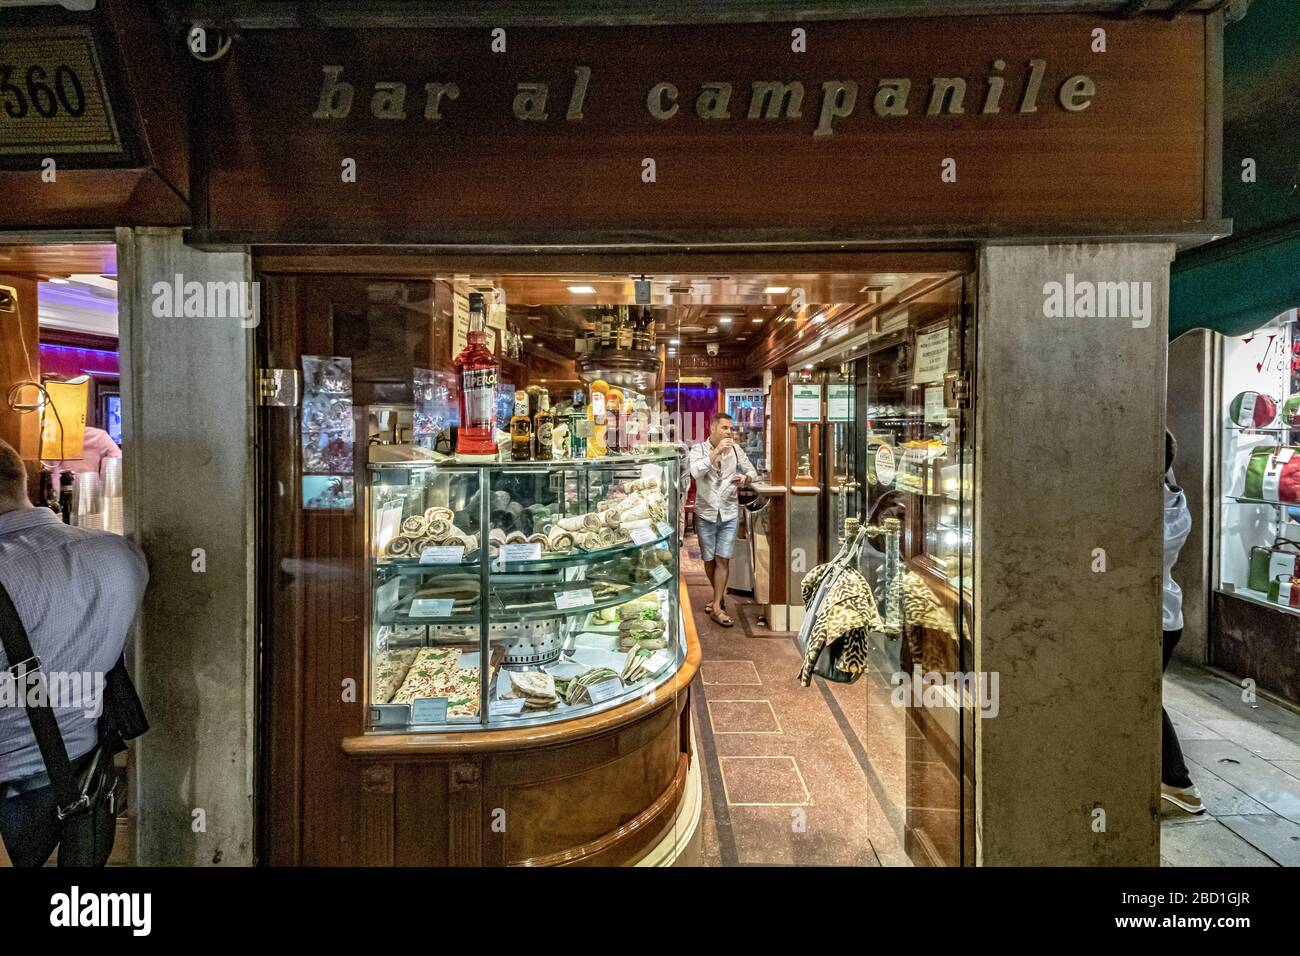 A man enjoys an glass of wine and some cicchetti standing inside Bar Al Campanile on Calle Larga S. Marco , Venice,Italy Stock Photo